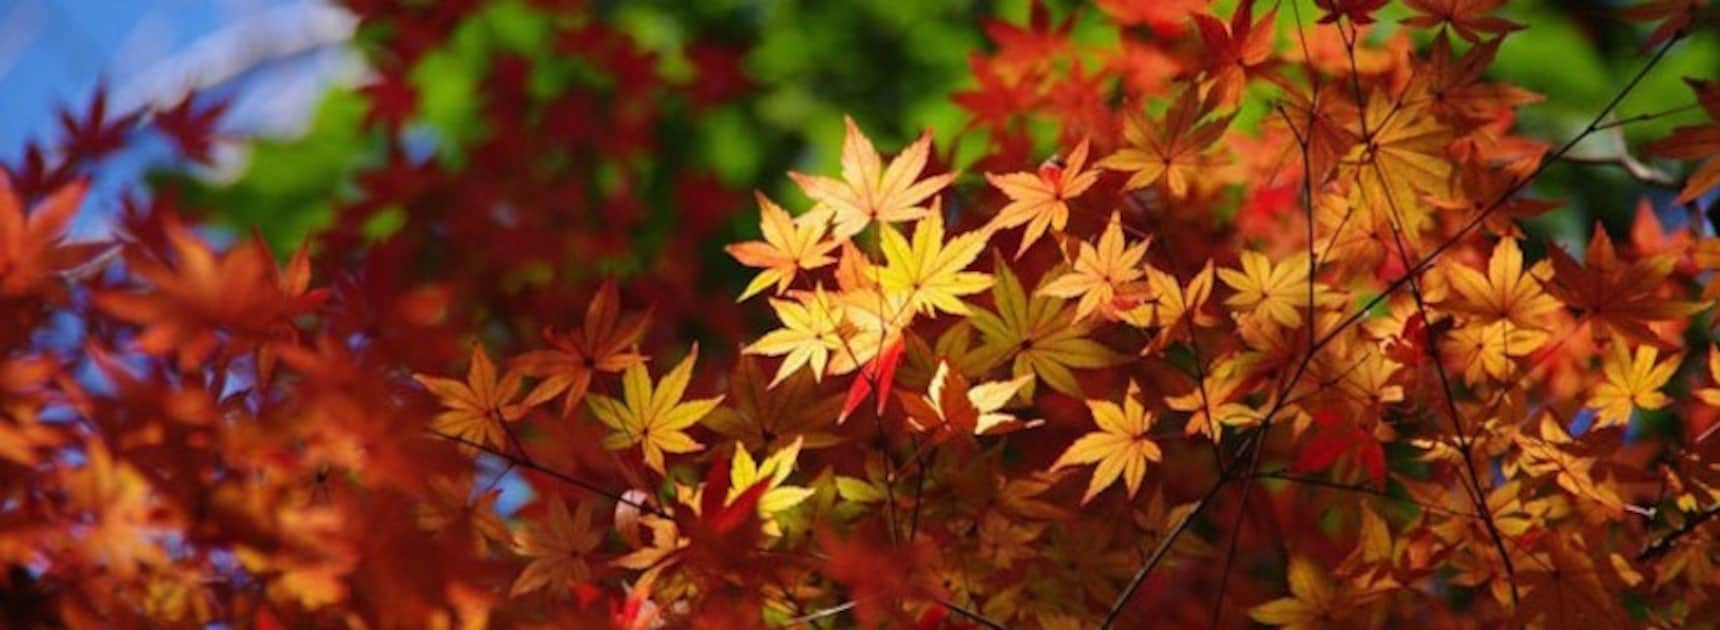 5 Pro Tips for Great Autumn Shots